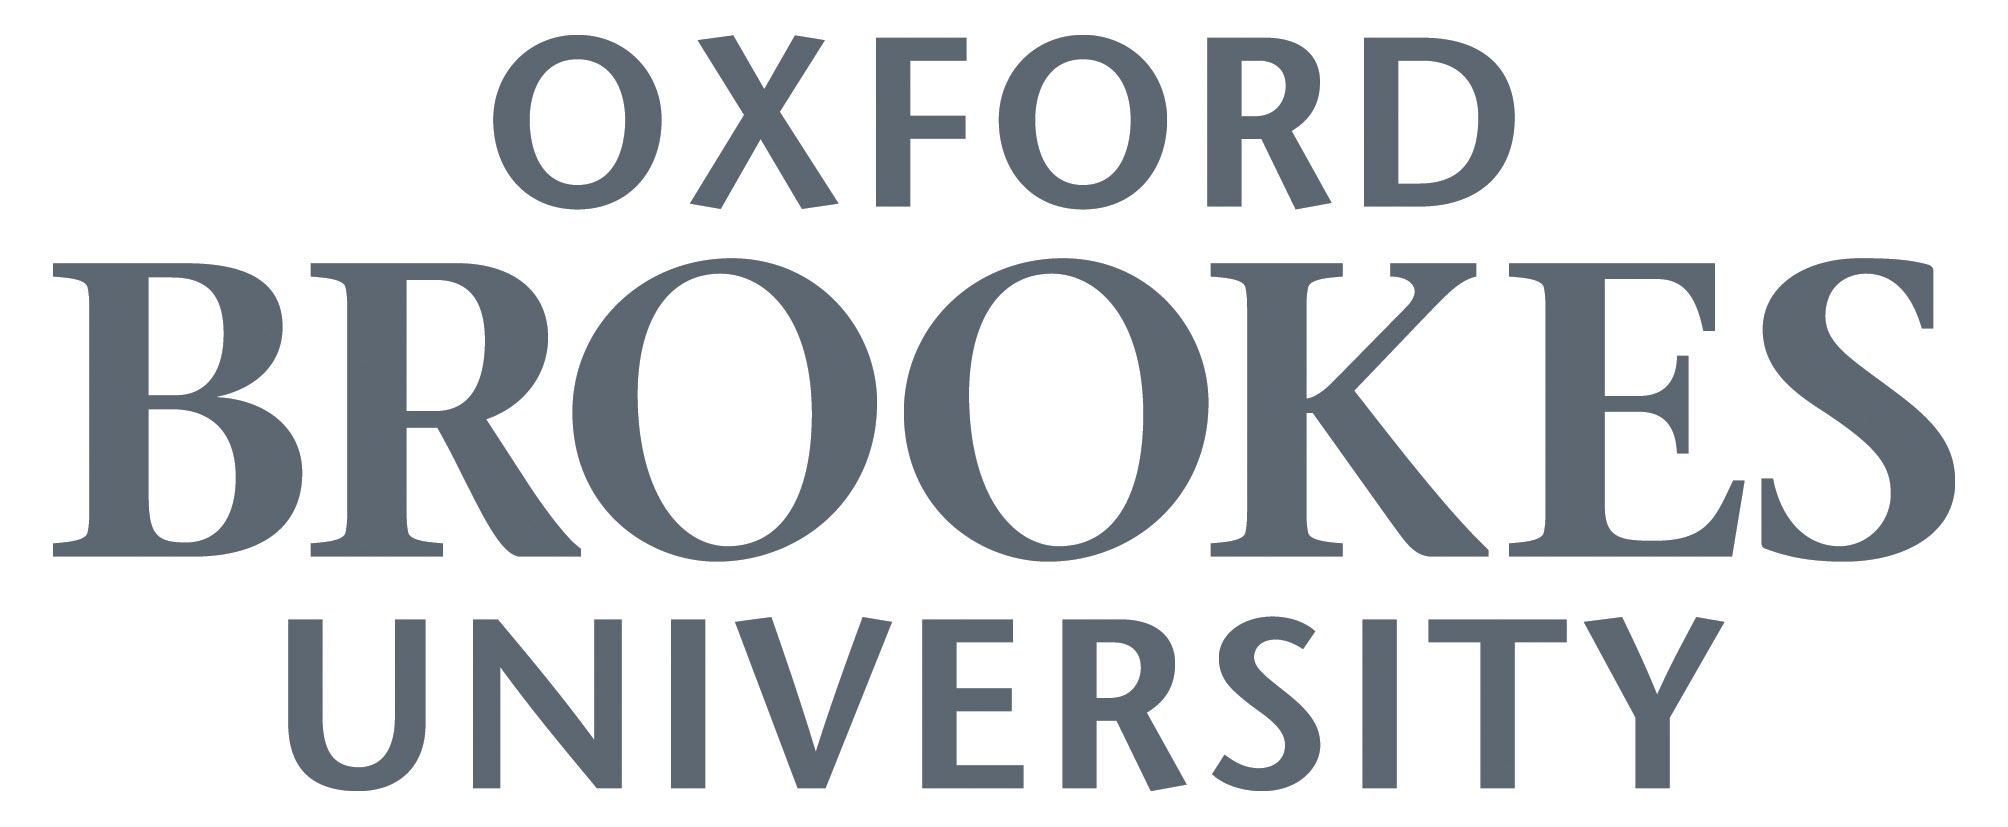 http://penguin-transcription.co.uk/wp-content/uploads/2014/10/brookes-logo2.jpg